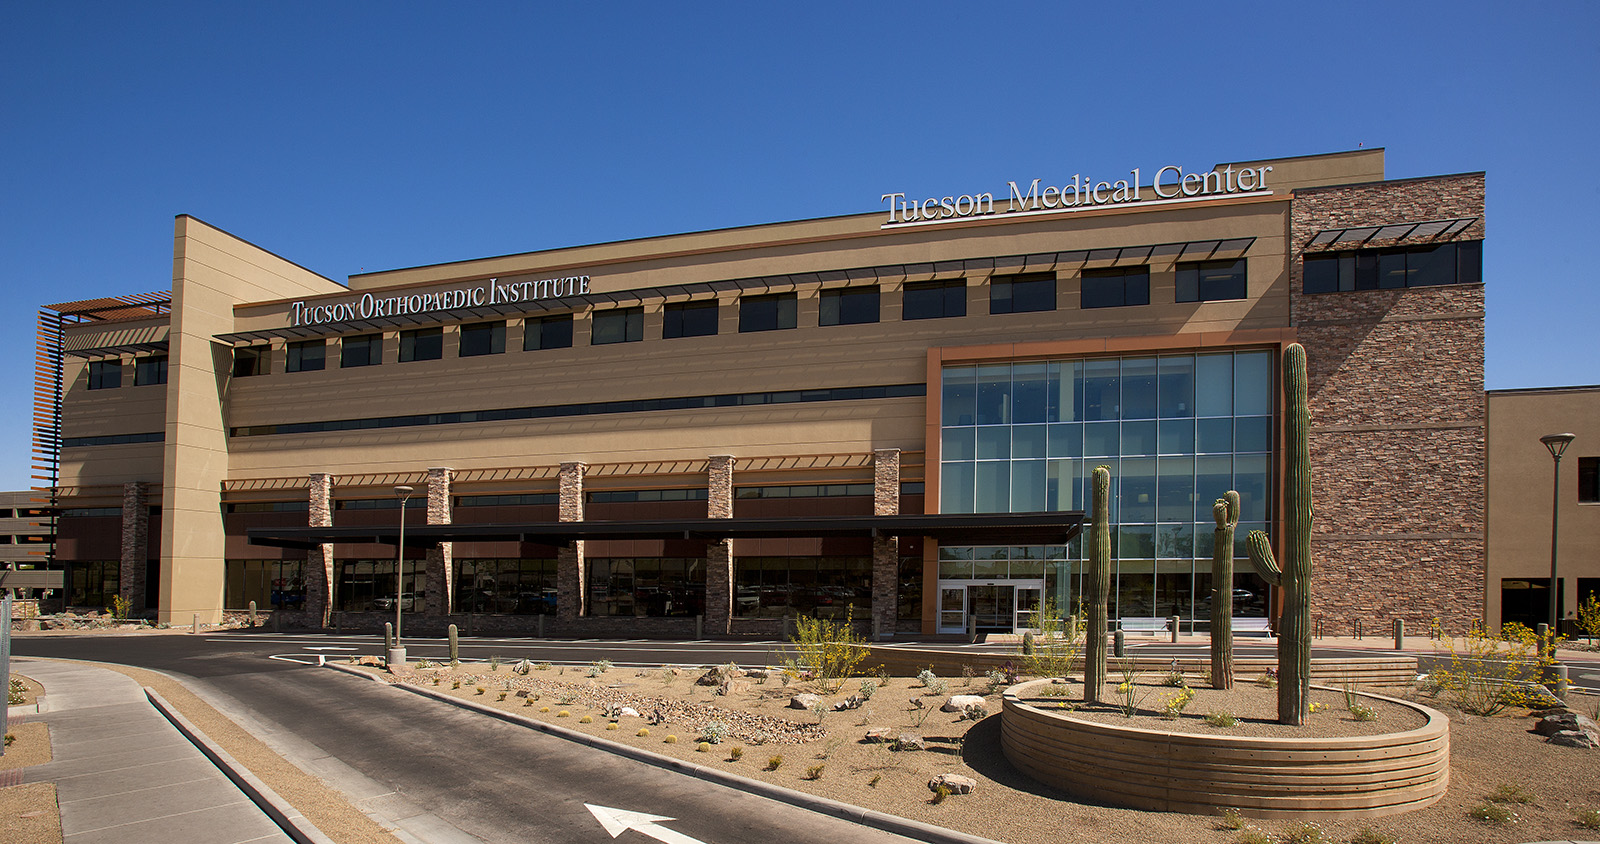 tucson-medical-center-exterior